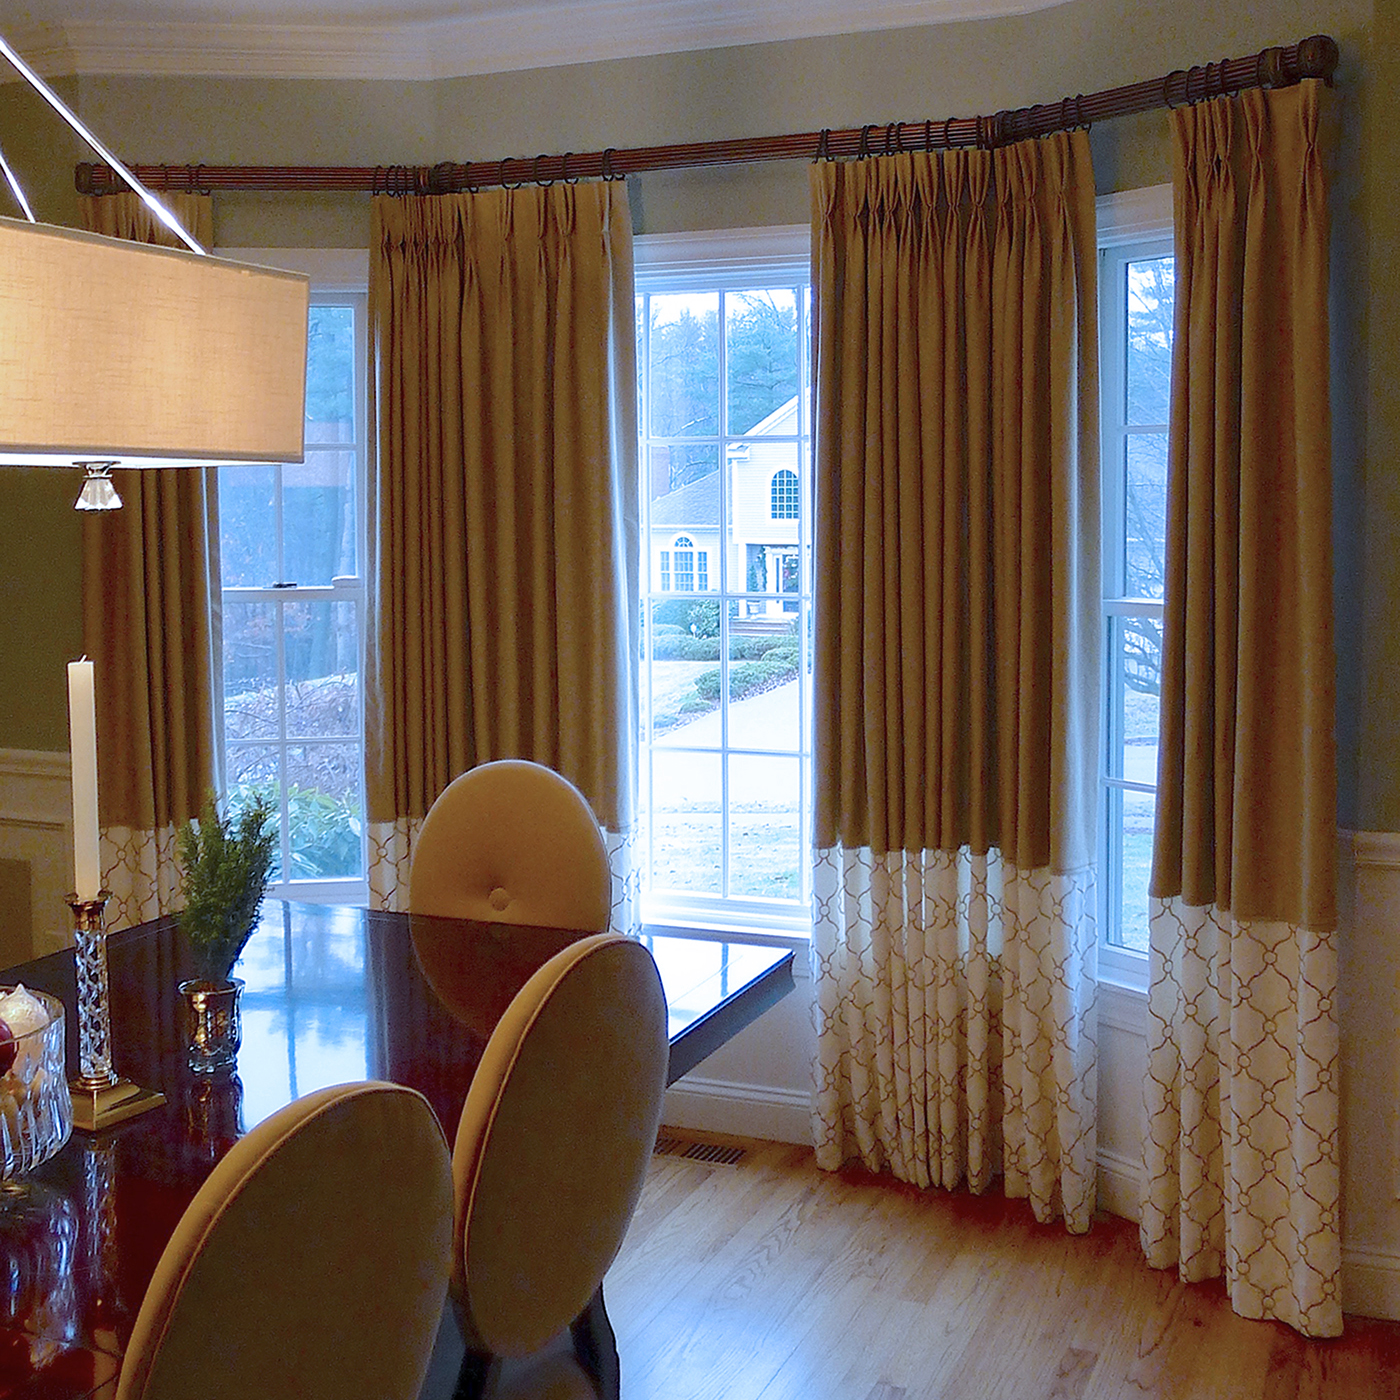 Color-blocked draperies - Custom-fitted drapery hardware and pleated drapery panels highlight a large bay window.